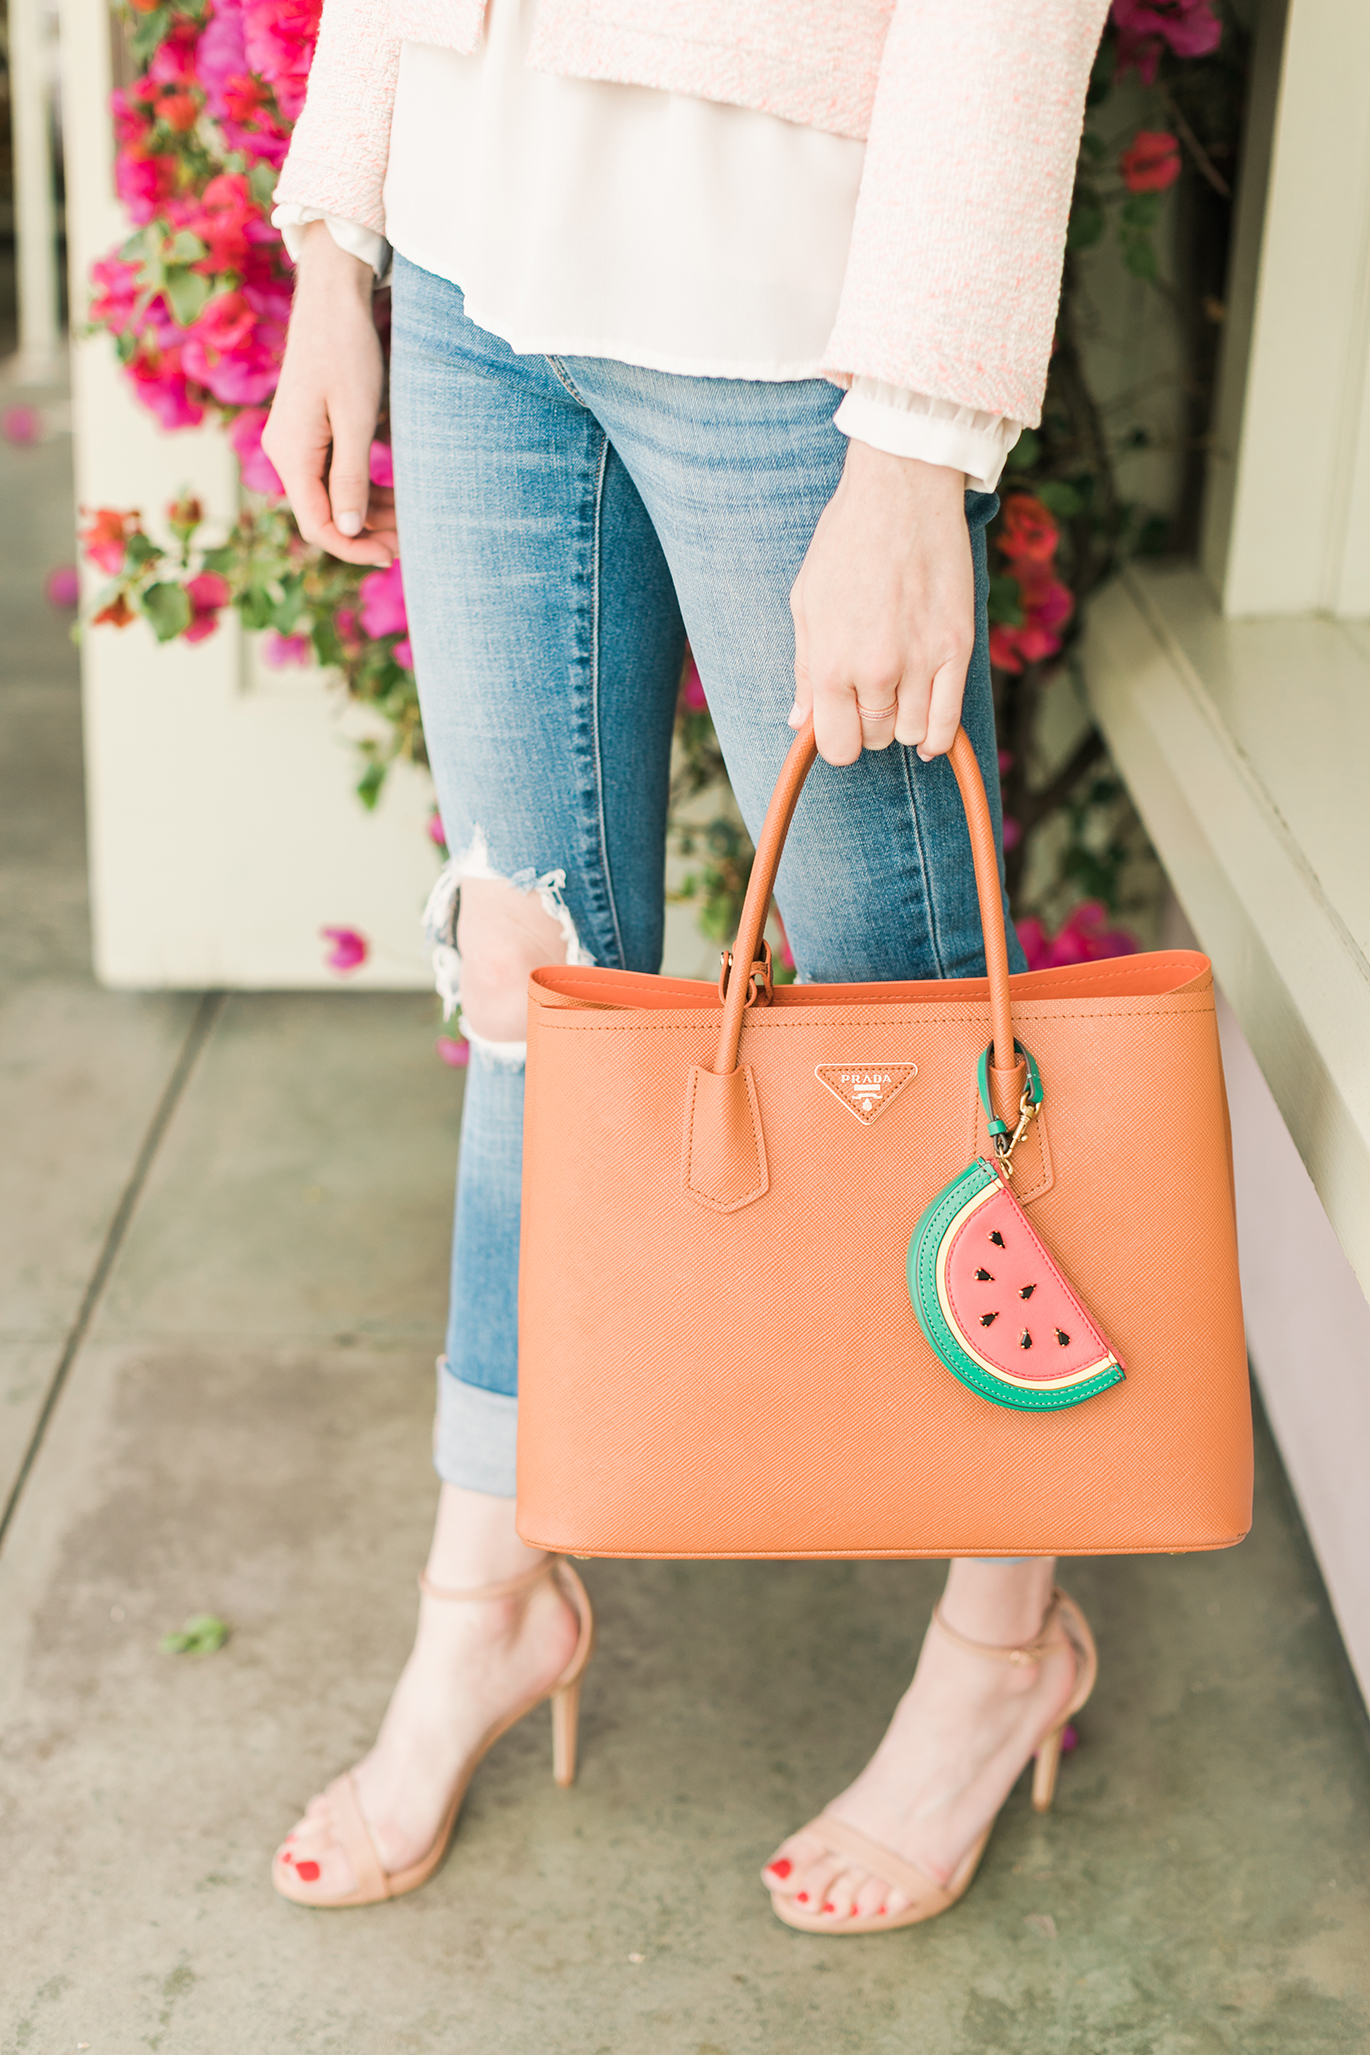 J.Crew watermelon bag charm